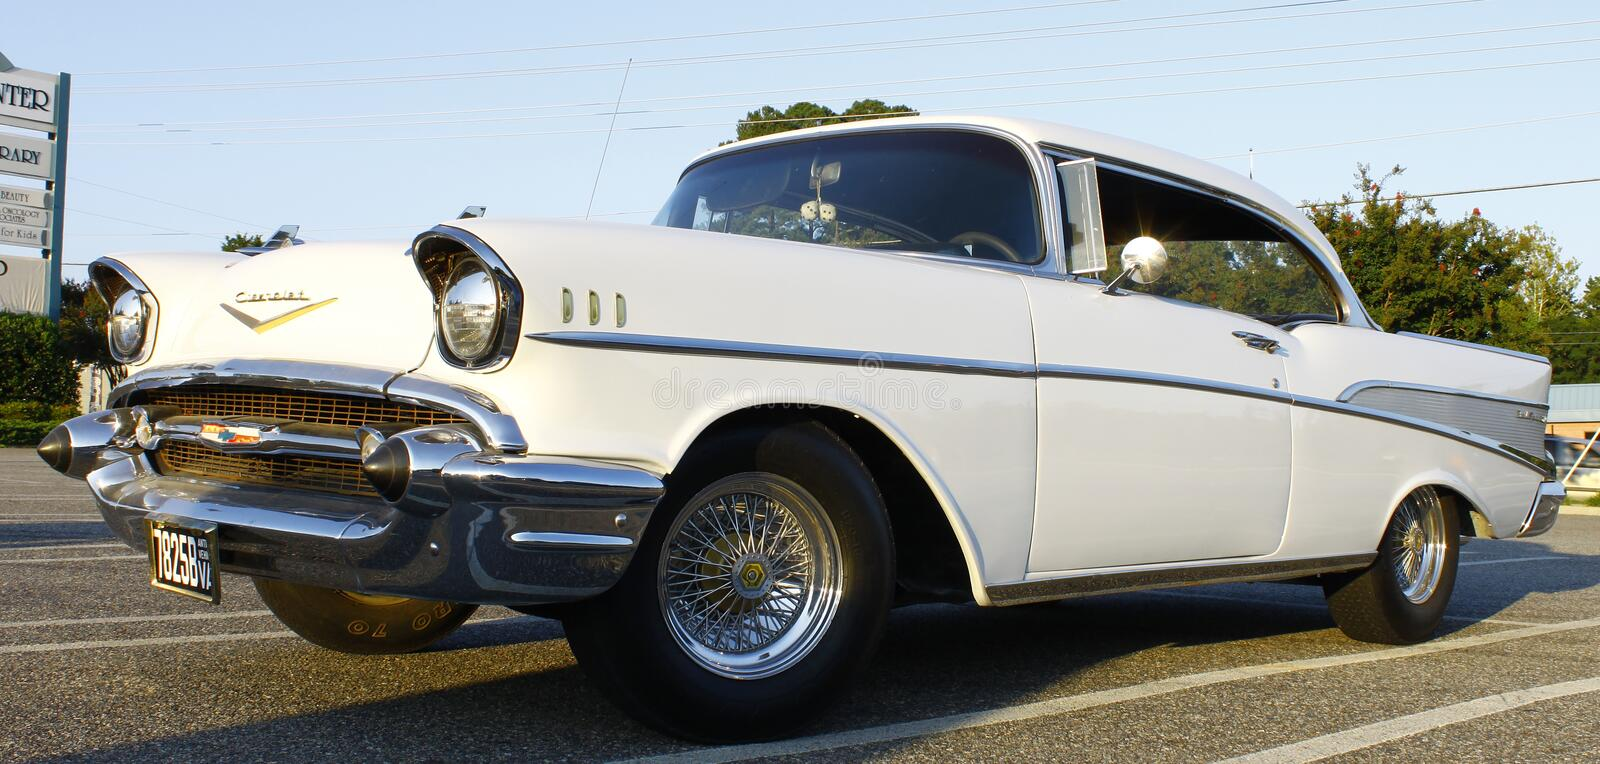 57 Chevy imagens de stock royalty free